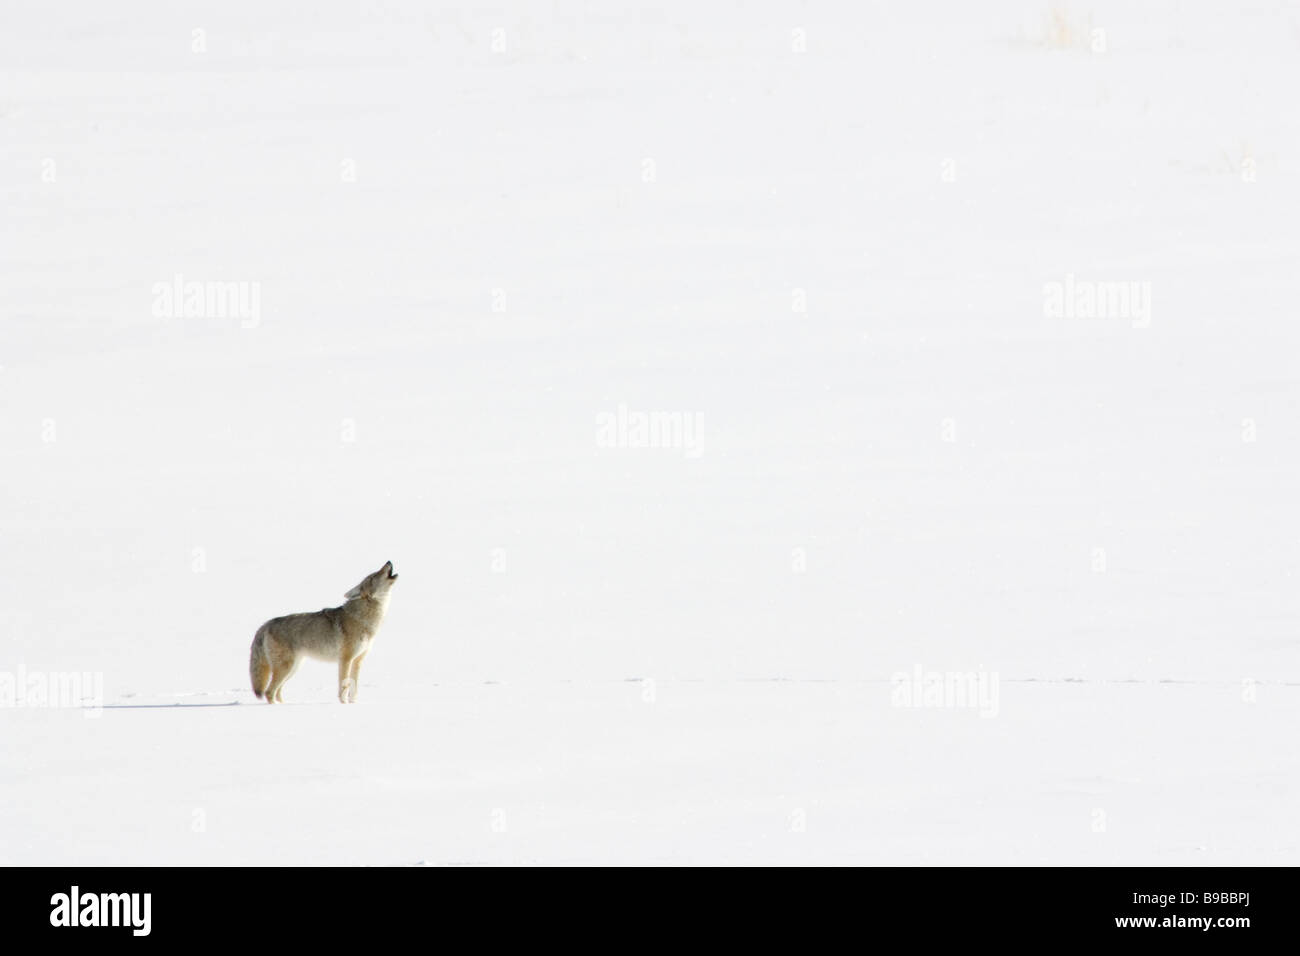 Coyote Howling Canis latrans - Stock Image